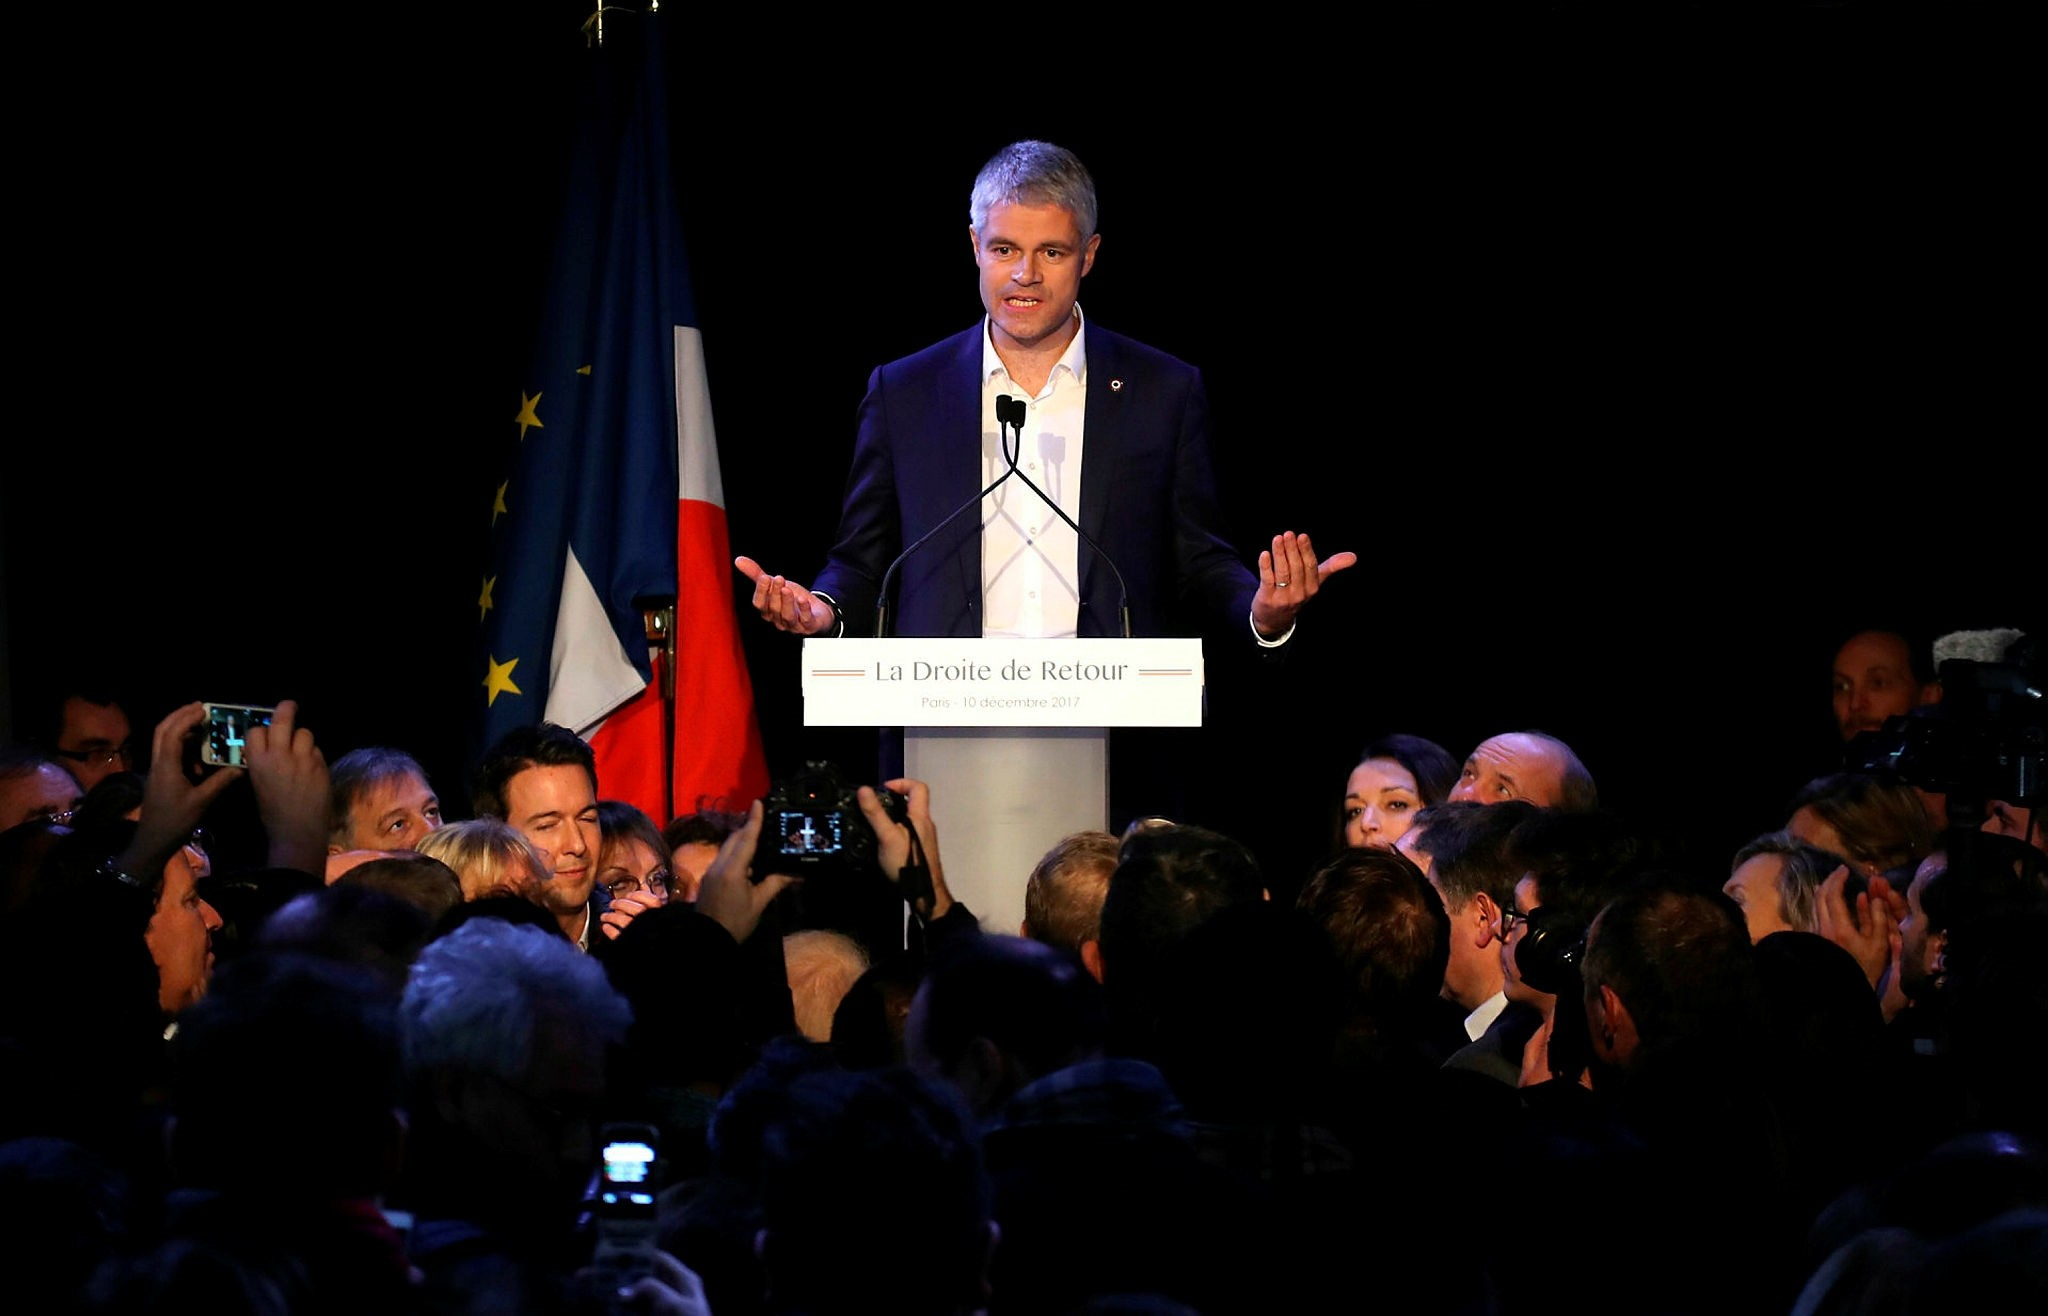 French right-wing Les Ru00e9publicains (LR) party's newly-elected President, Laurent Wauquiez reacts after the results' announcement on December 10, 2017 at le Tripot Regnier bar in Paris. (AFP Photo)